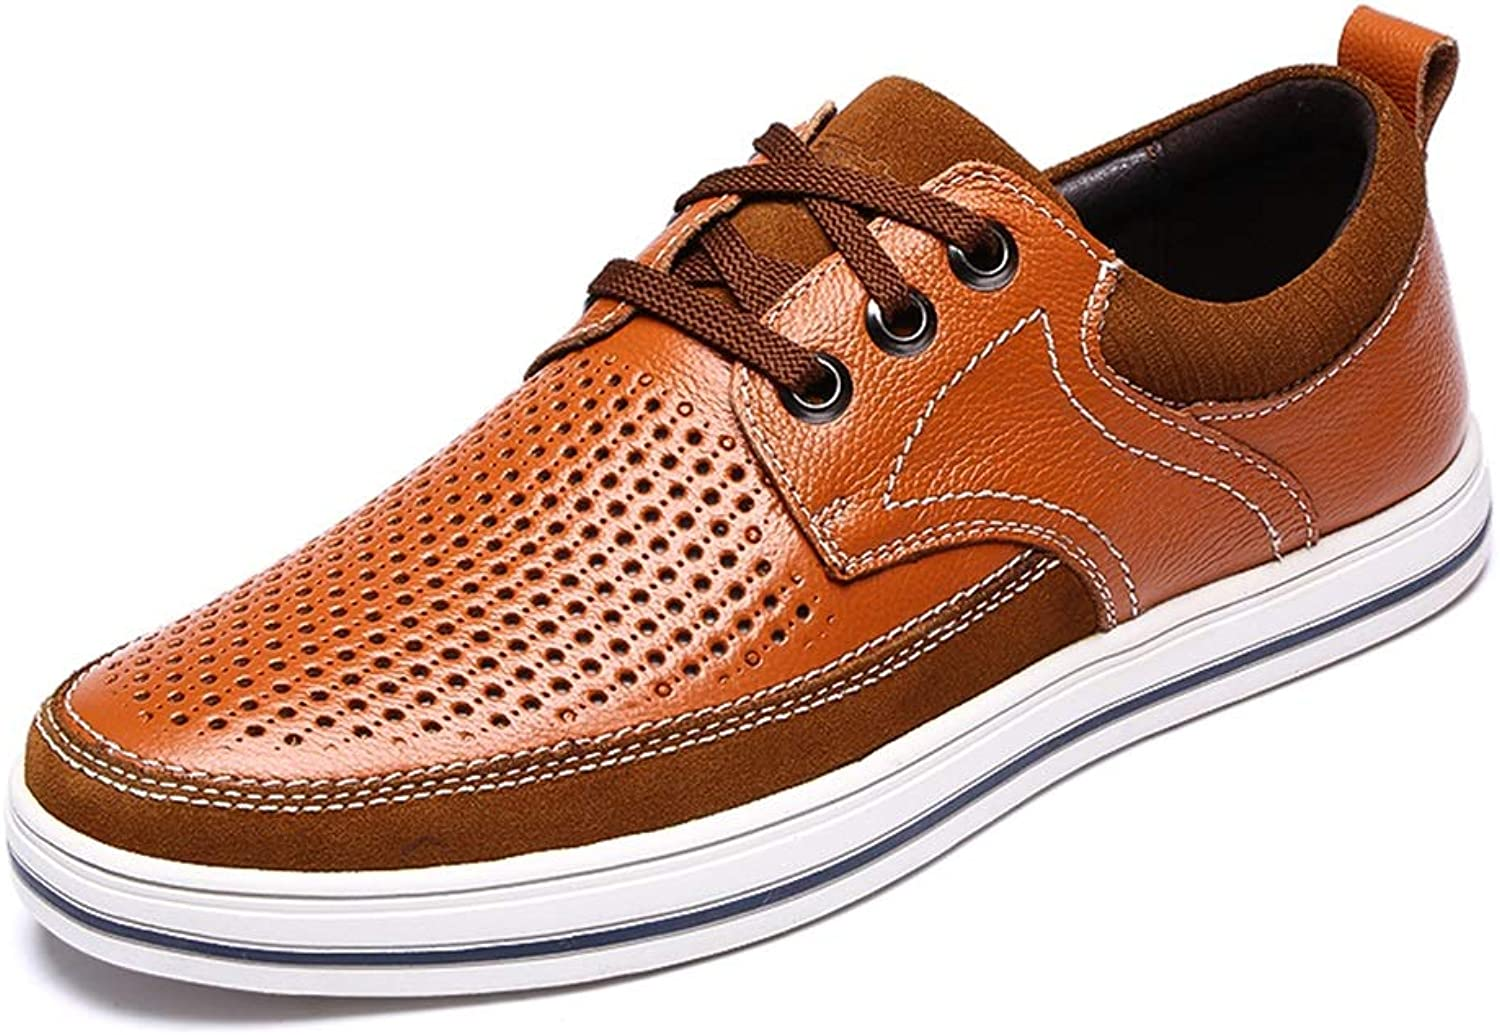 LXLA- Men's Hollow Casual Lace Up Leather shoes, Mens Comfortable Breathable Loafers for Men (color   Light Brown, Size   38)